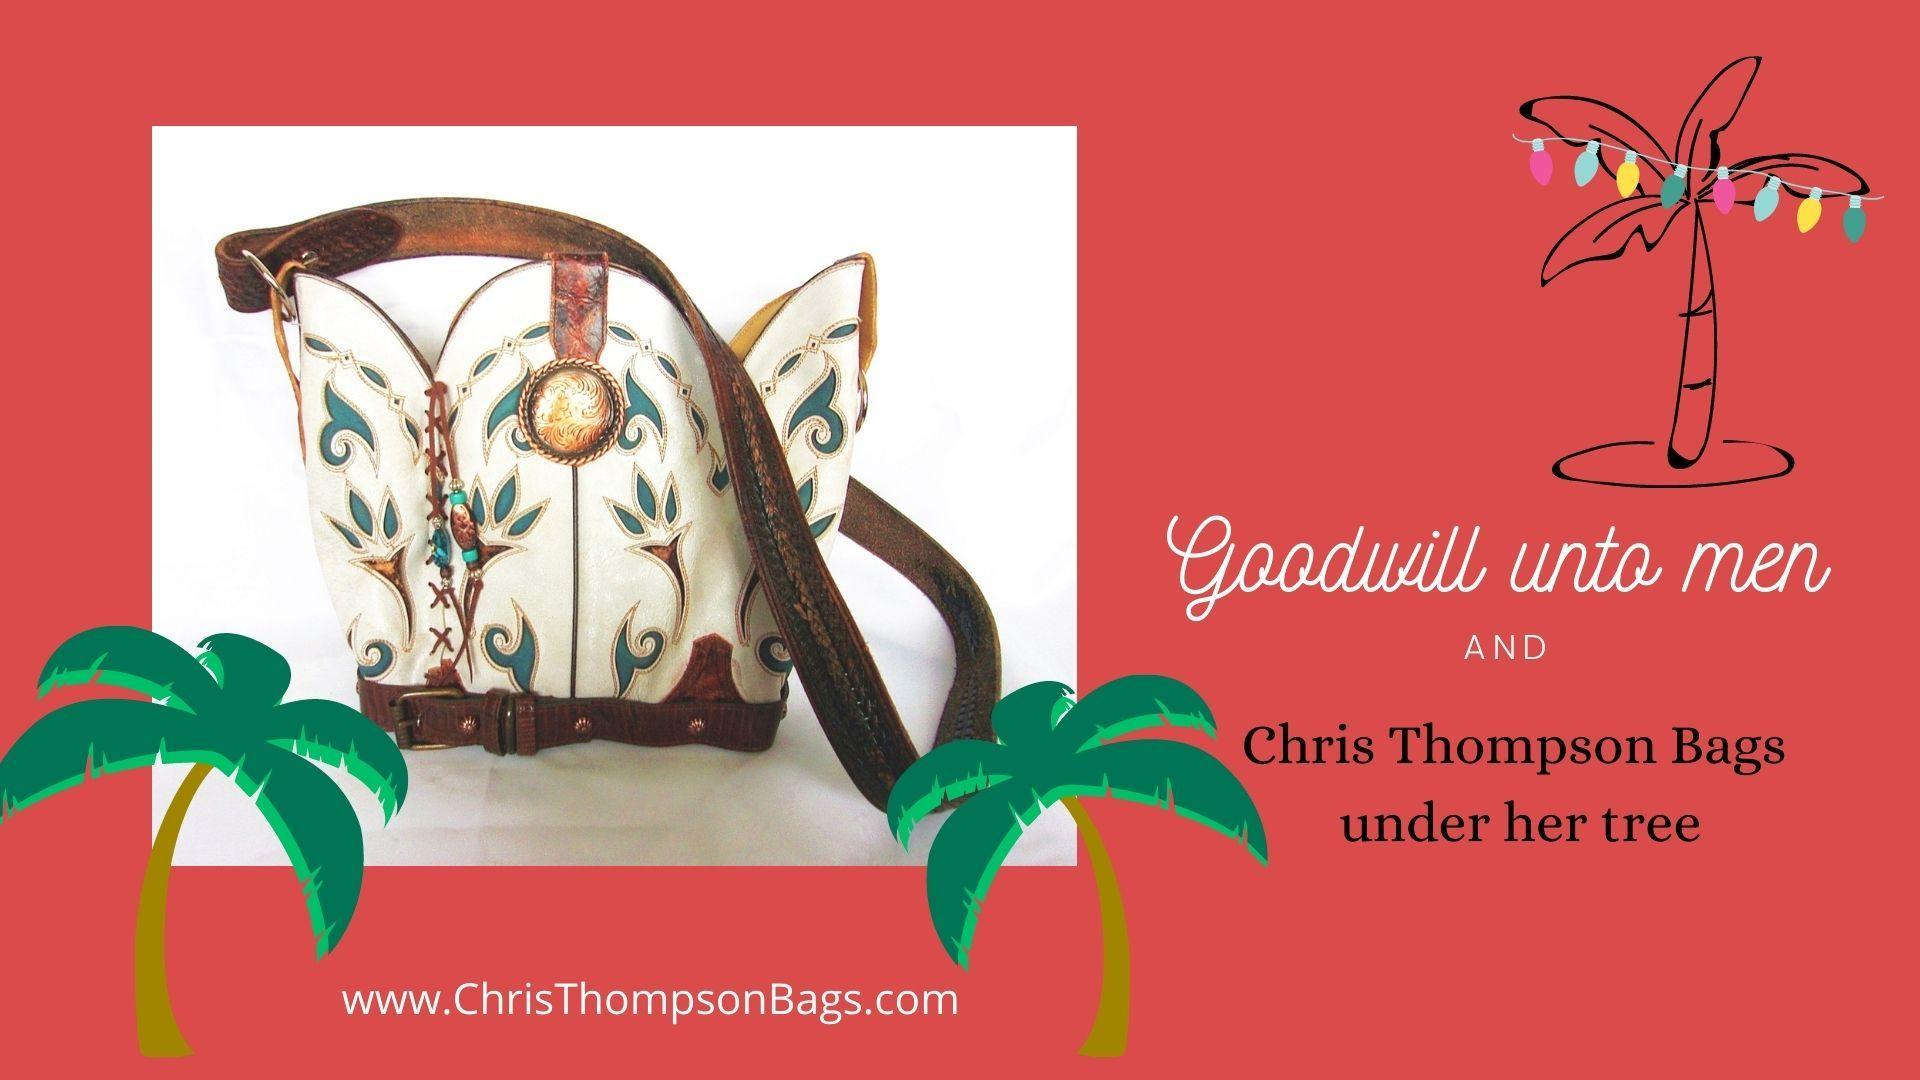 Hand-Crafted Handbags and Totes made from Cowboy Boots cowboy boot purses, western fringe purse, handmade leather purses, boot purse, handmade western purse, custom leather handbags Chris Thompson Bags